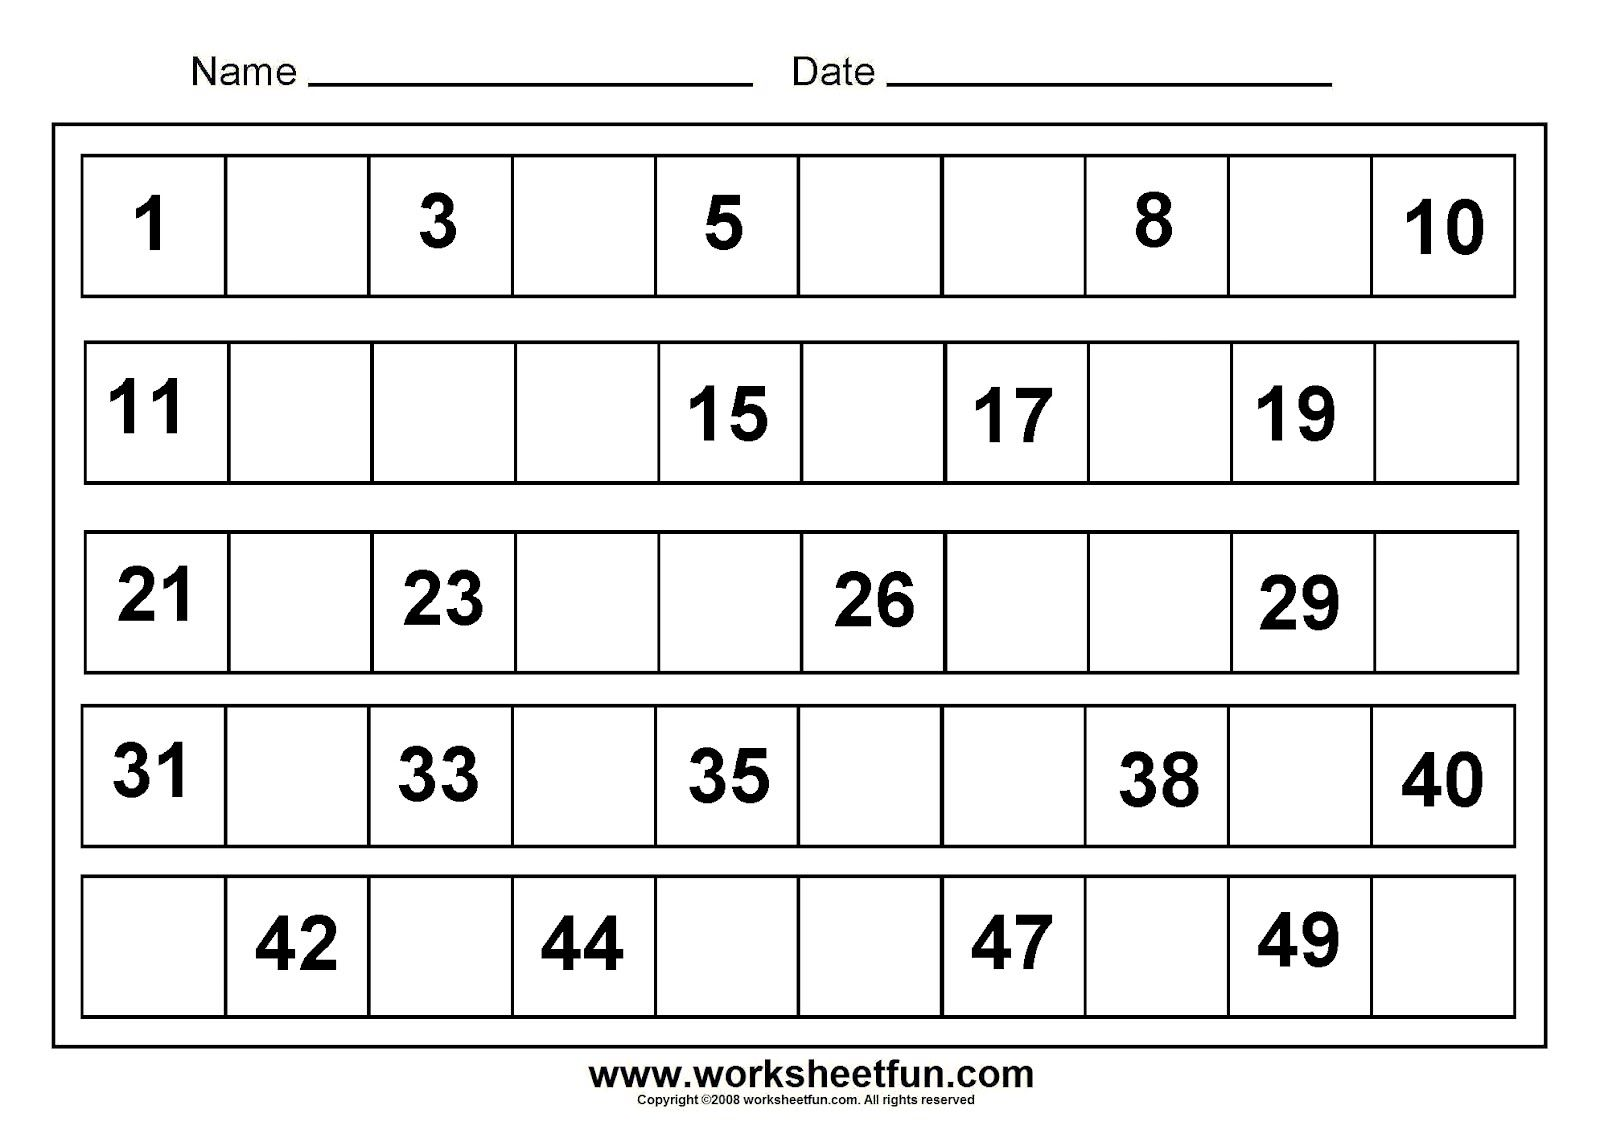 math worksheet : 1000 images about work sheets on pinterest  math worksheets  : Printable Kindergarten Worksheets